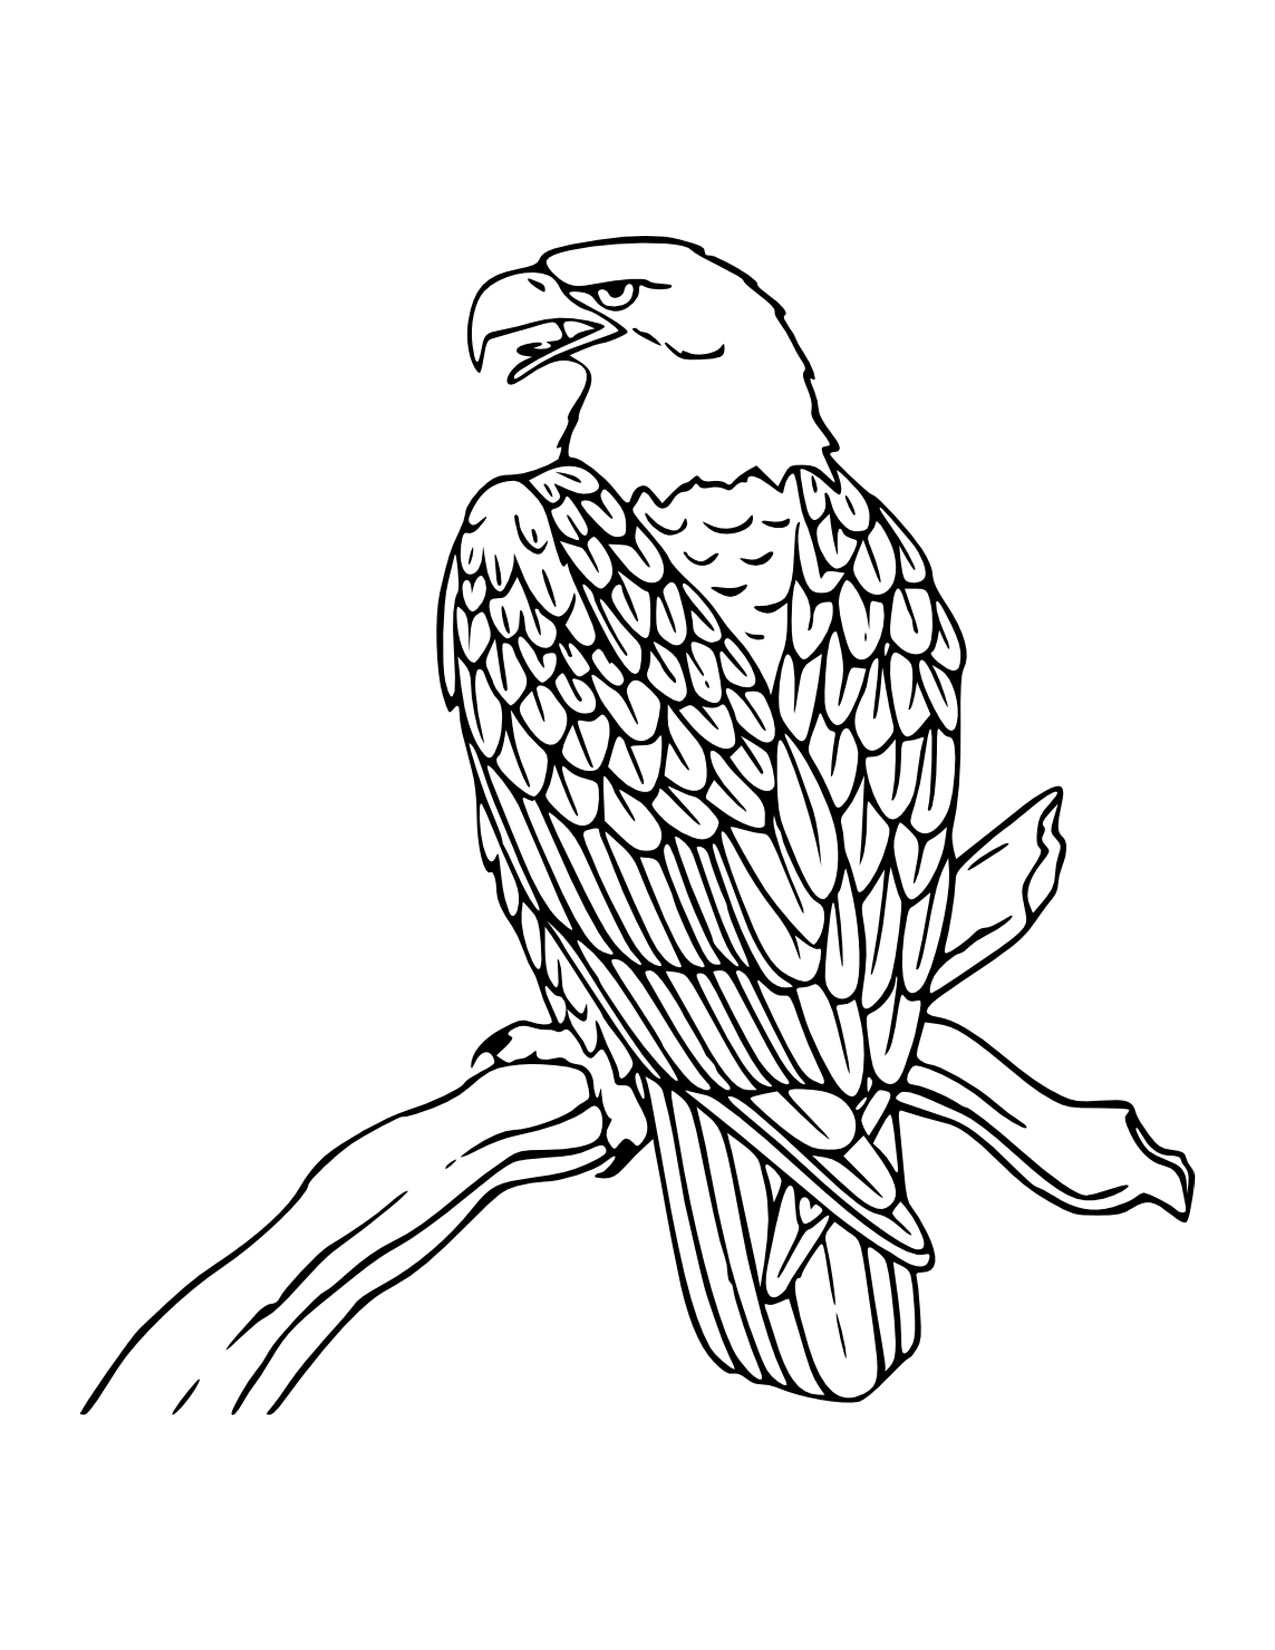 eagle coloring images eagle coloring pages download and print eagle coloring pages images eagle coloring